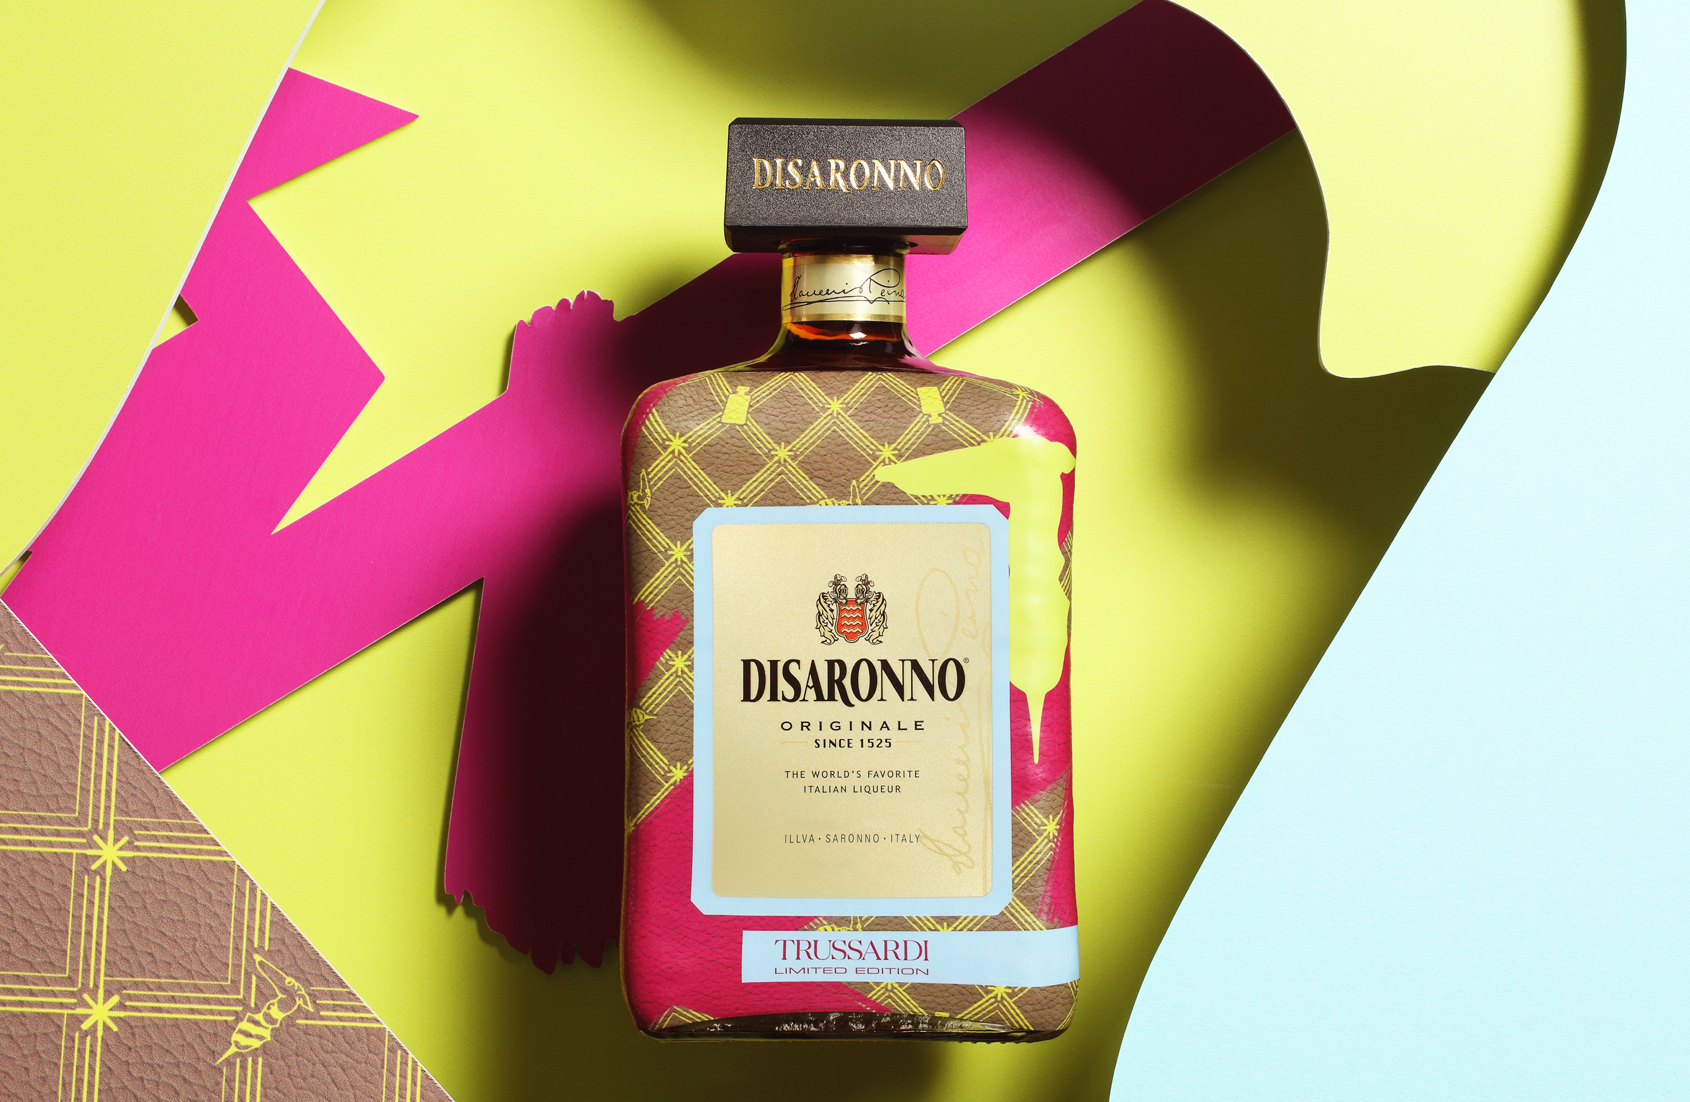 TRUSSARDI Dresses DISARONNO with Limited Edition Bottle photo